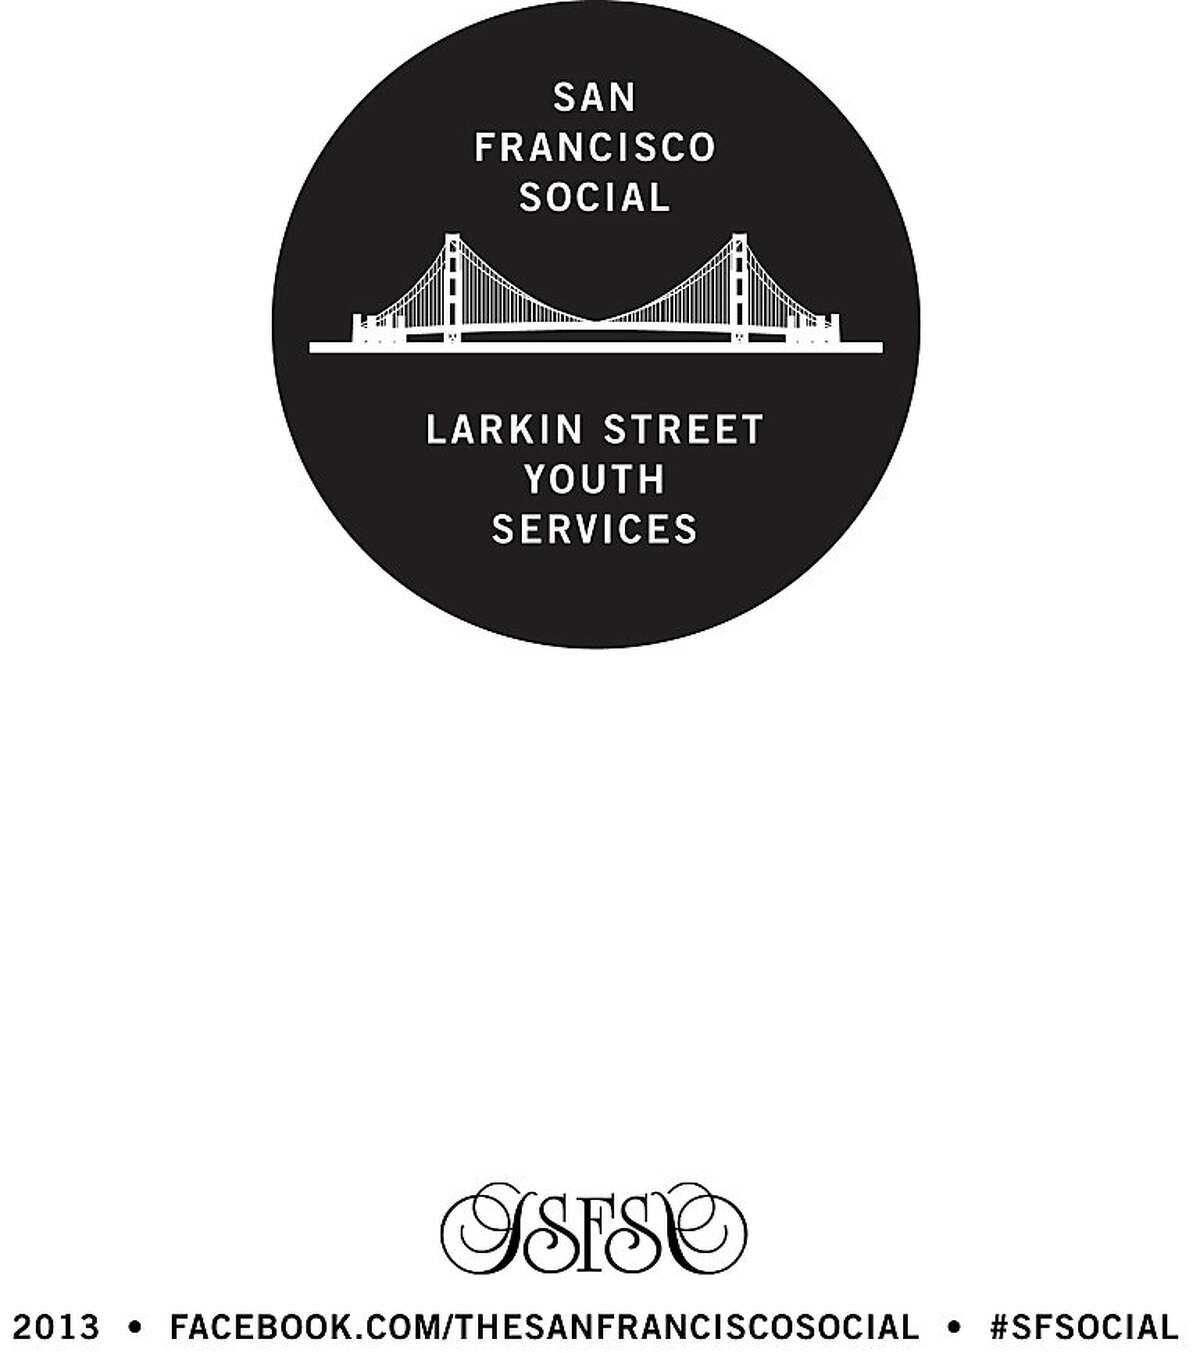 The San Francisco Social benefiting Larkin Street Youth Services